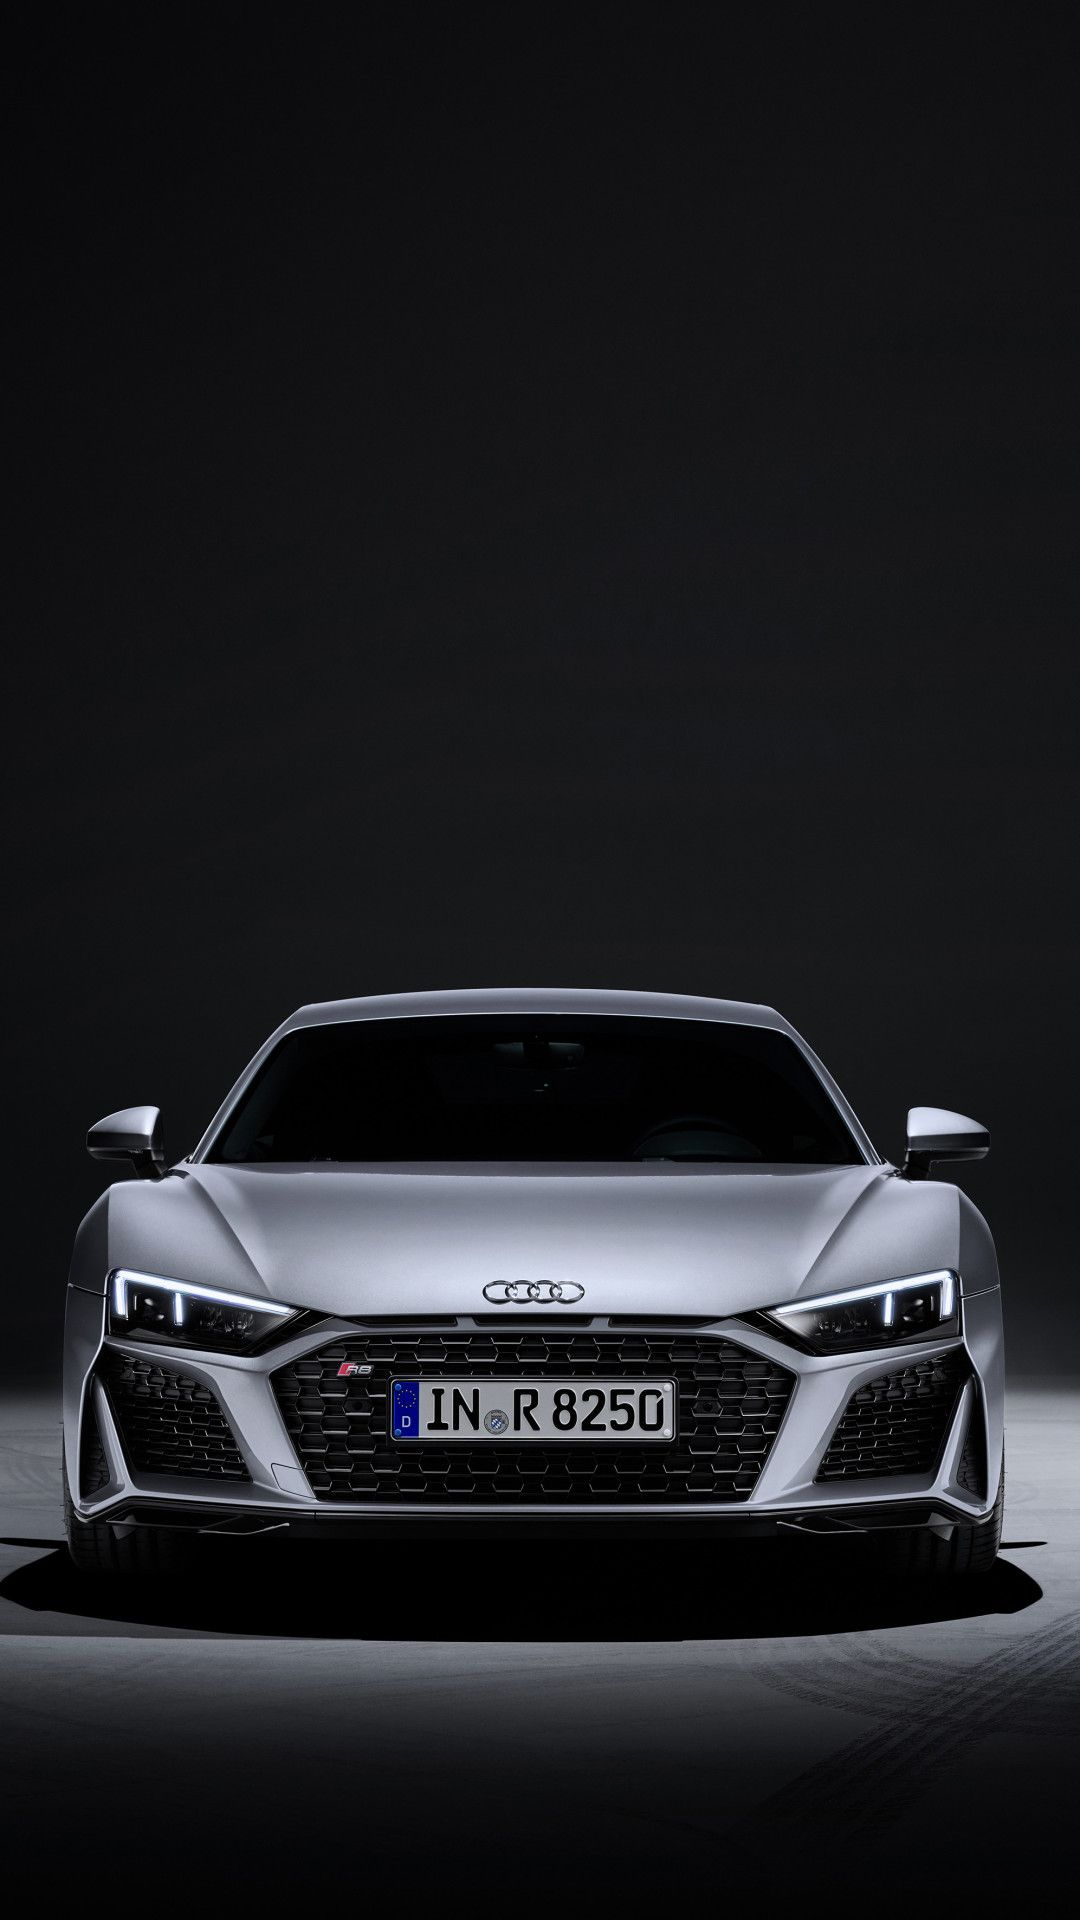 Audi R8 V10 Rwd Coupe 2019 Mobile Wallpaper Iphone Android Samsung Pixel Xiaomi In 2020 Audi R8 Wallpaper Audi R8 V10 Audi R8